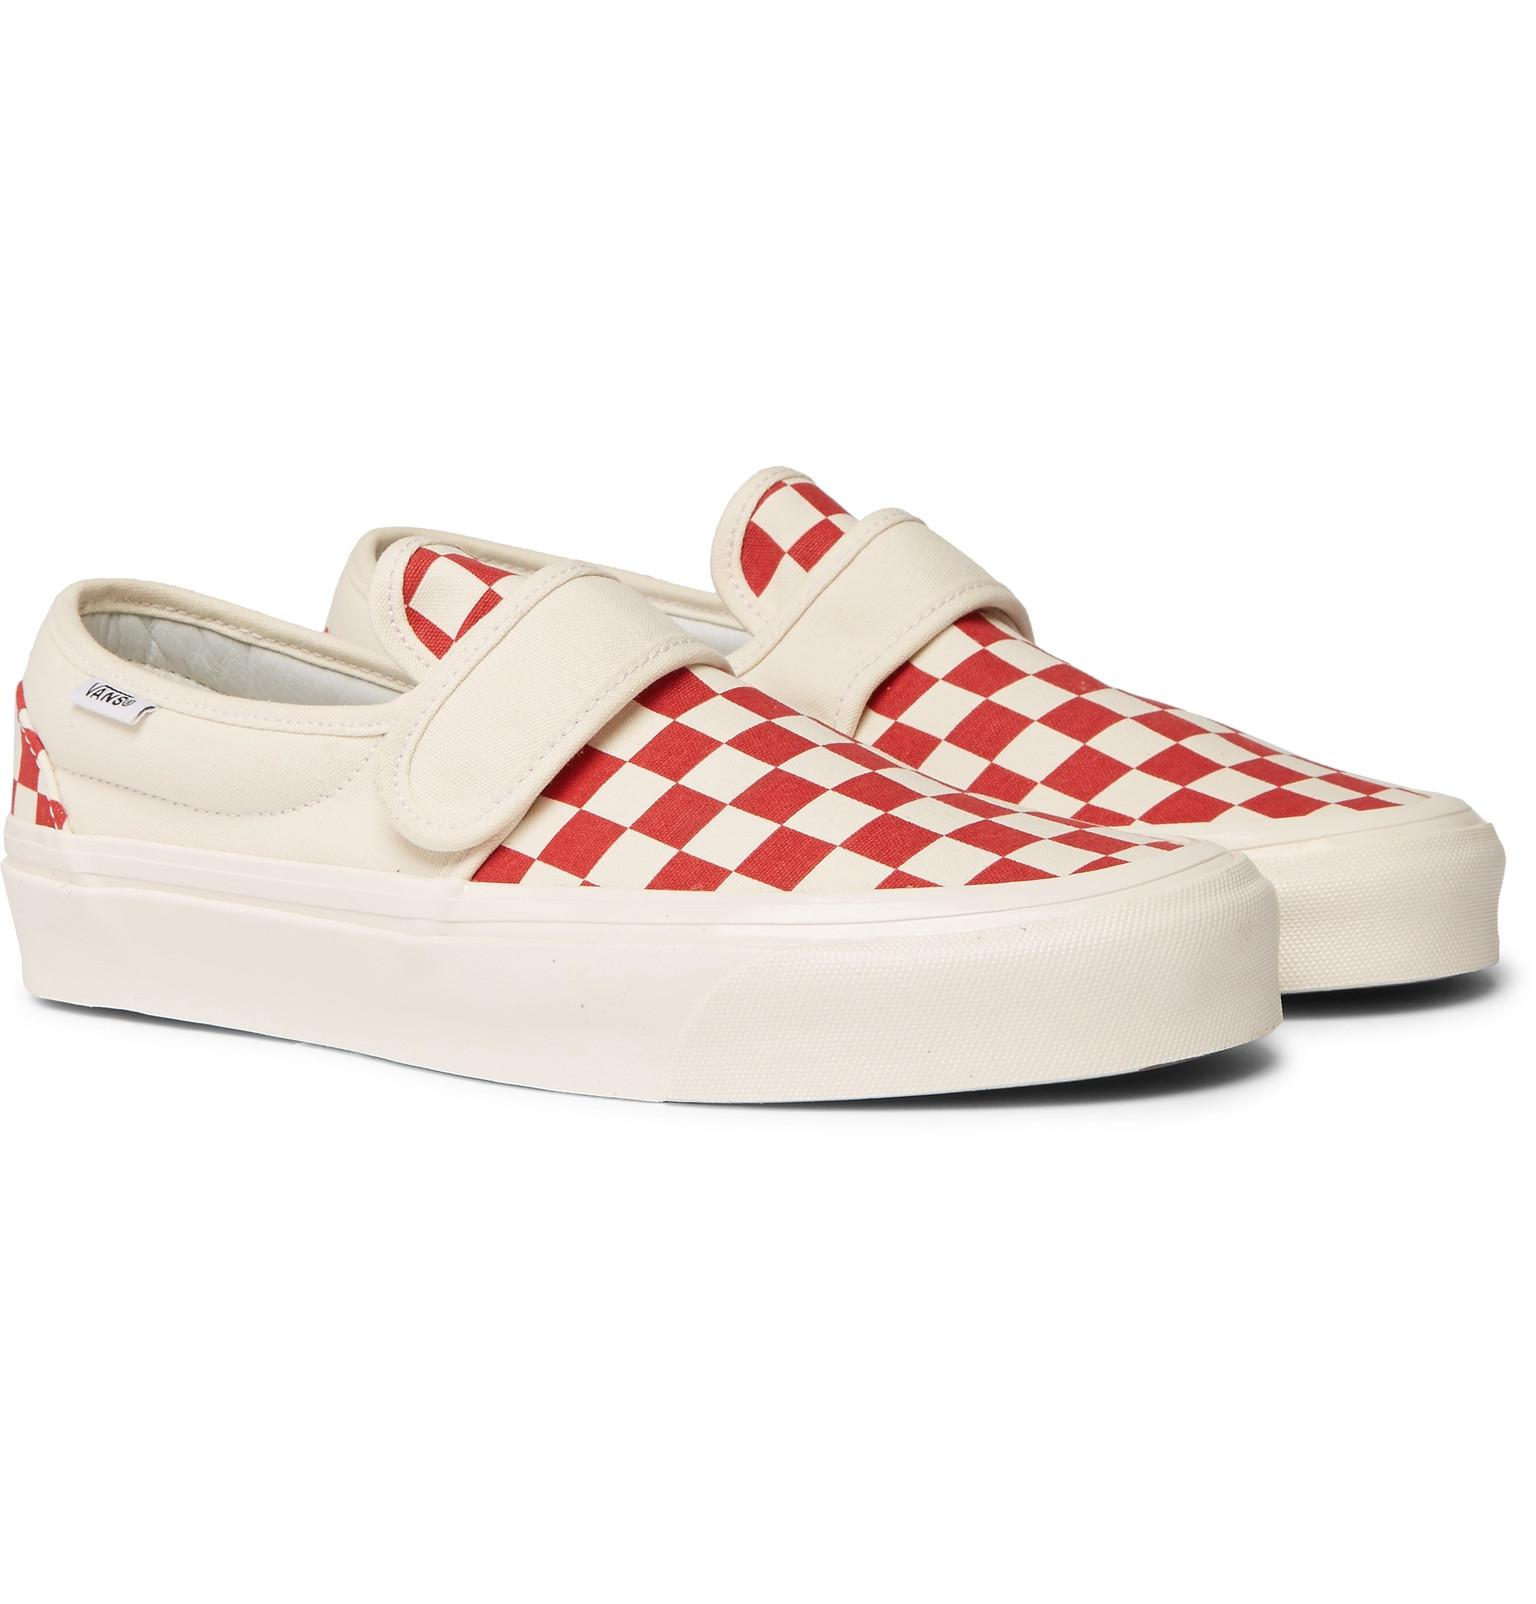 22df2e898a47 Vans Anaheim Factory 47 V Dx Checkerboard Canvas Sneakers in Red for ...